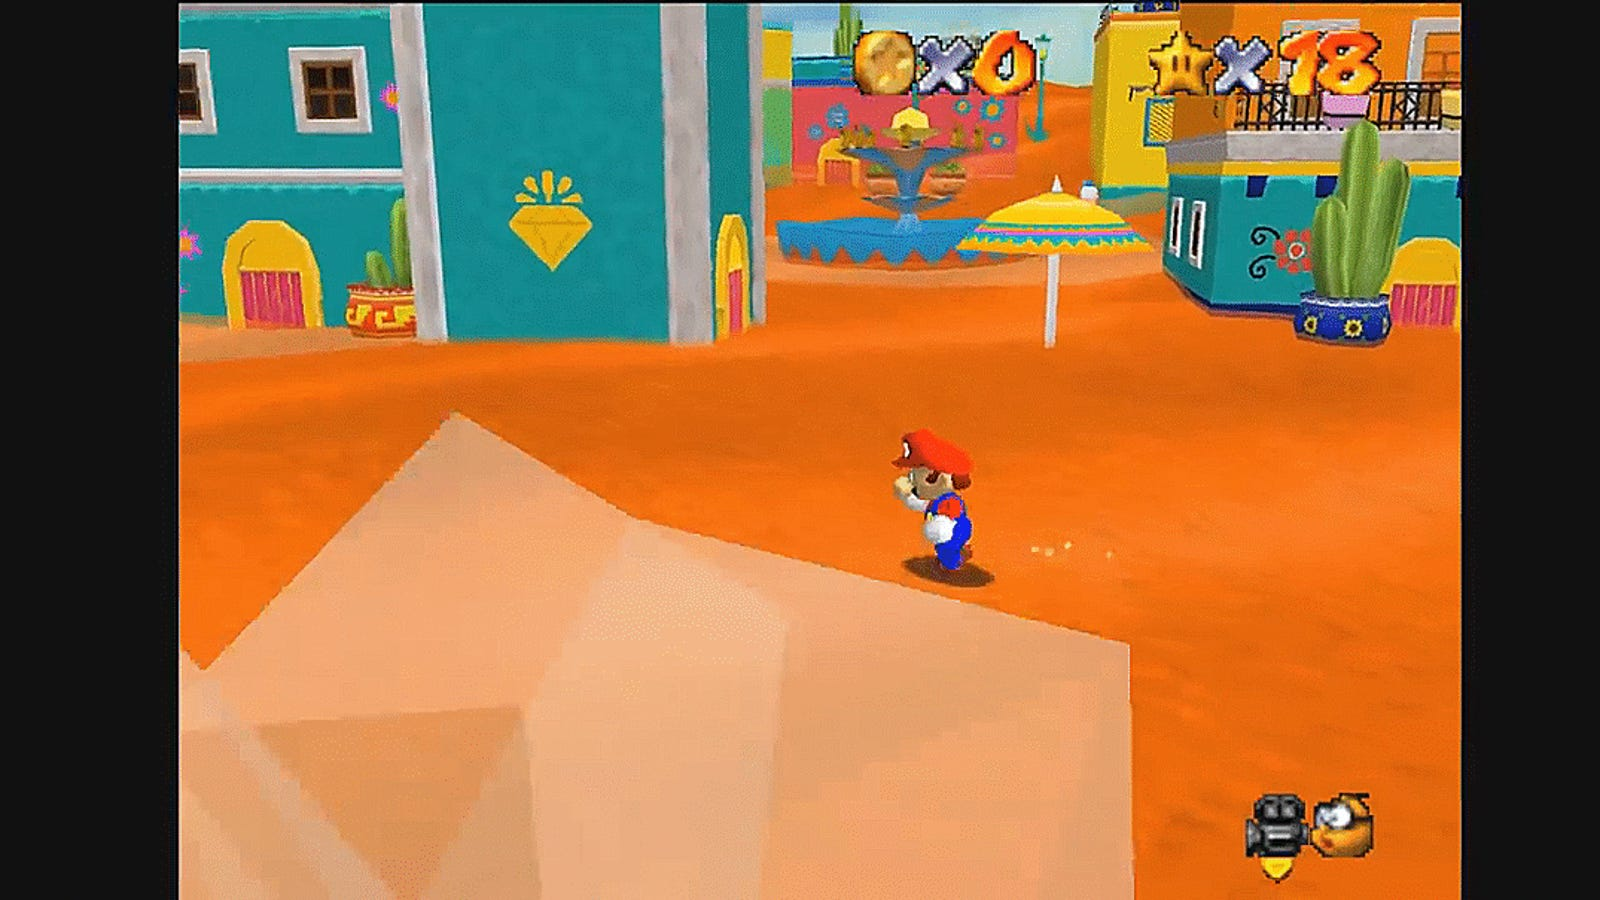 A Modder Recreated Super Mario Odyssey's Sand Kingdom In Super Mario 64